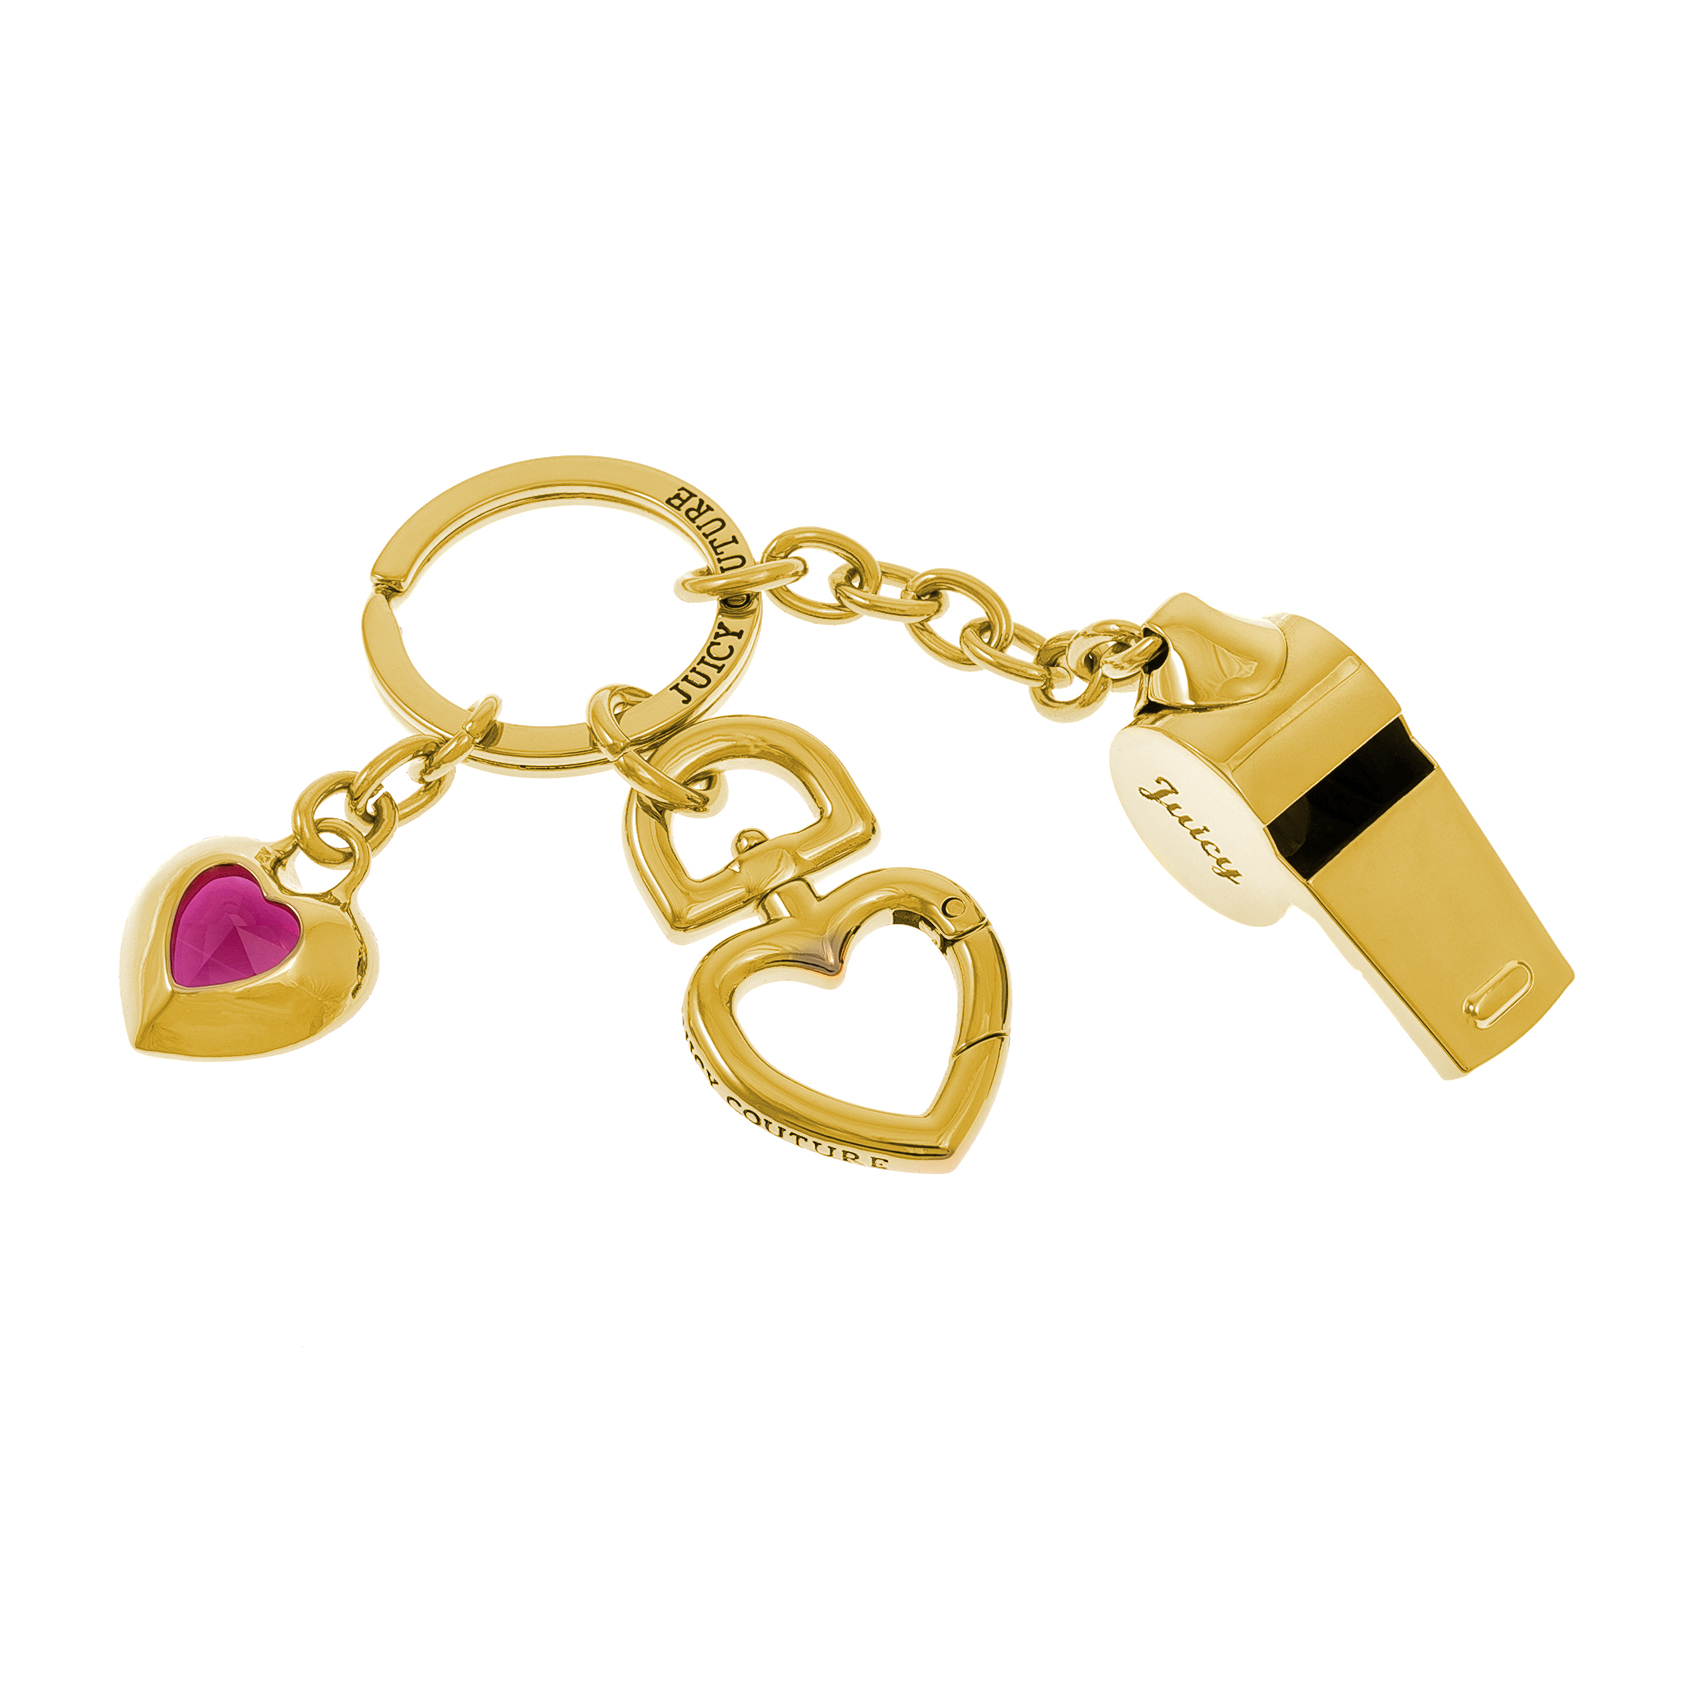 JUICY COUTURE – Μπρελόκ σφυρίχτρα JUICY COUTURE χρυσό-ροζ